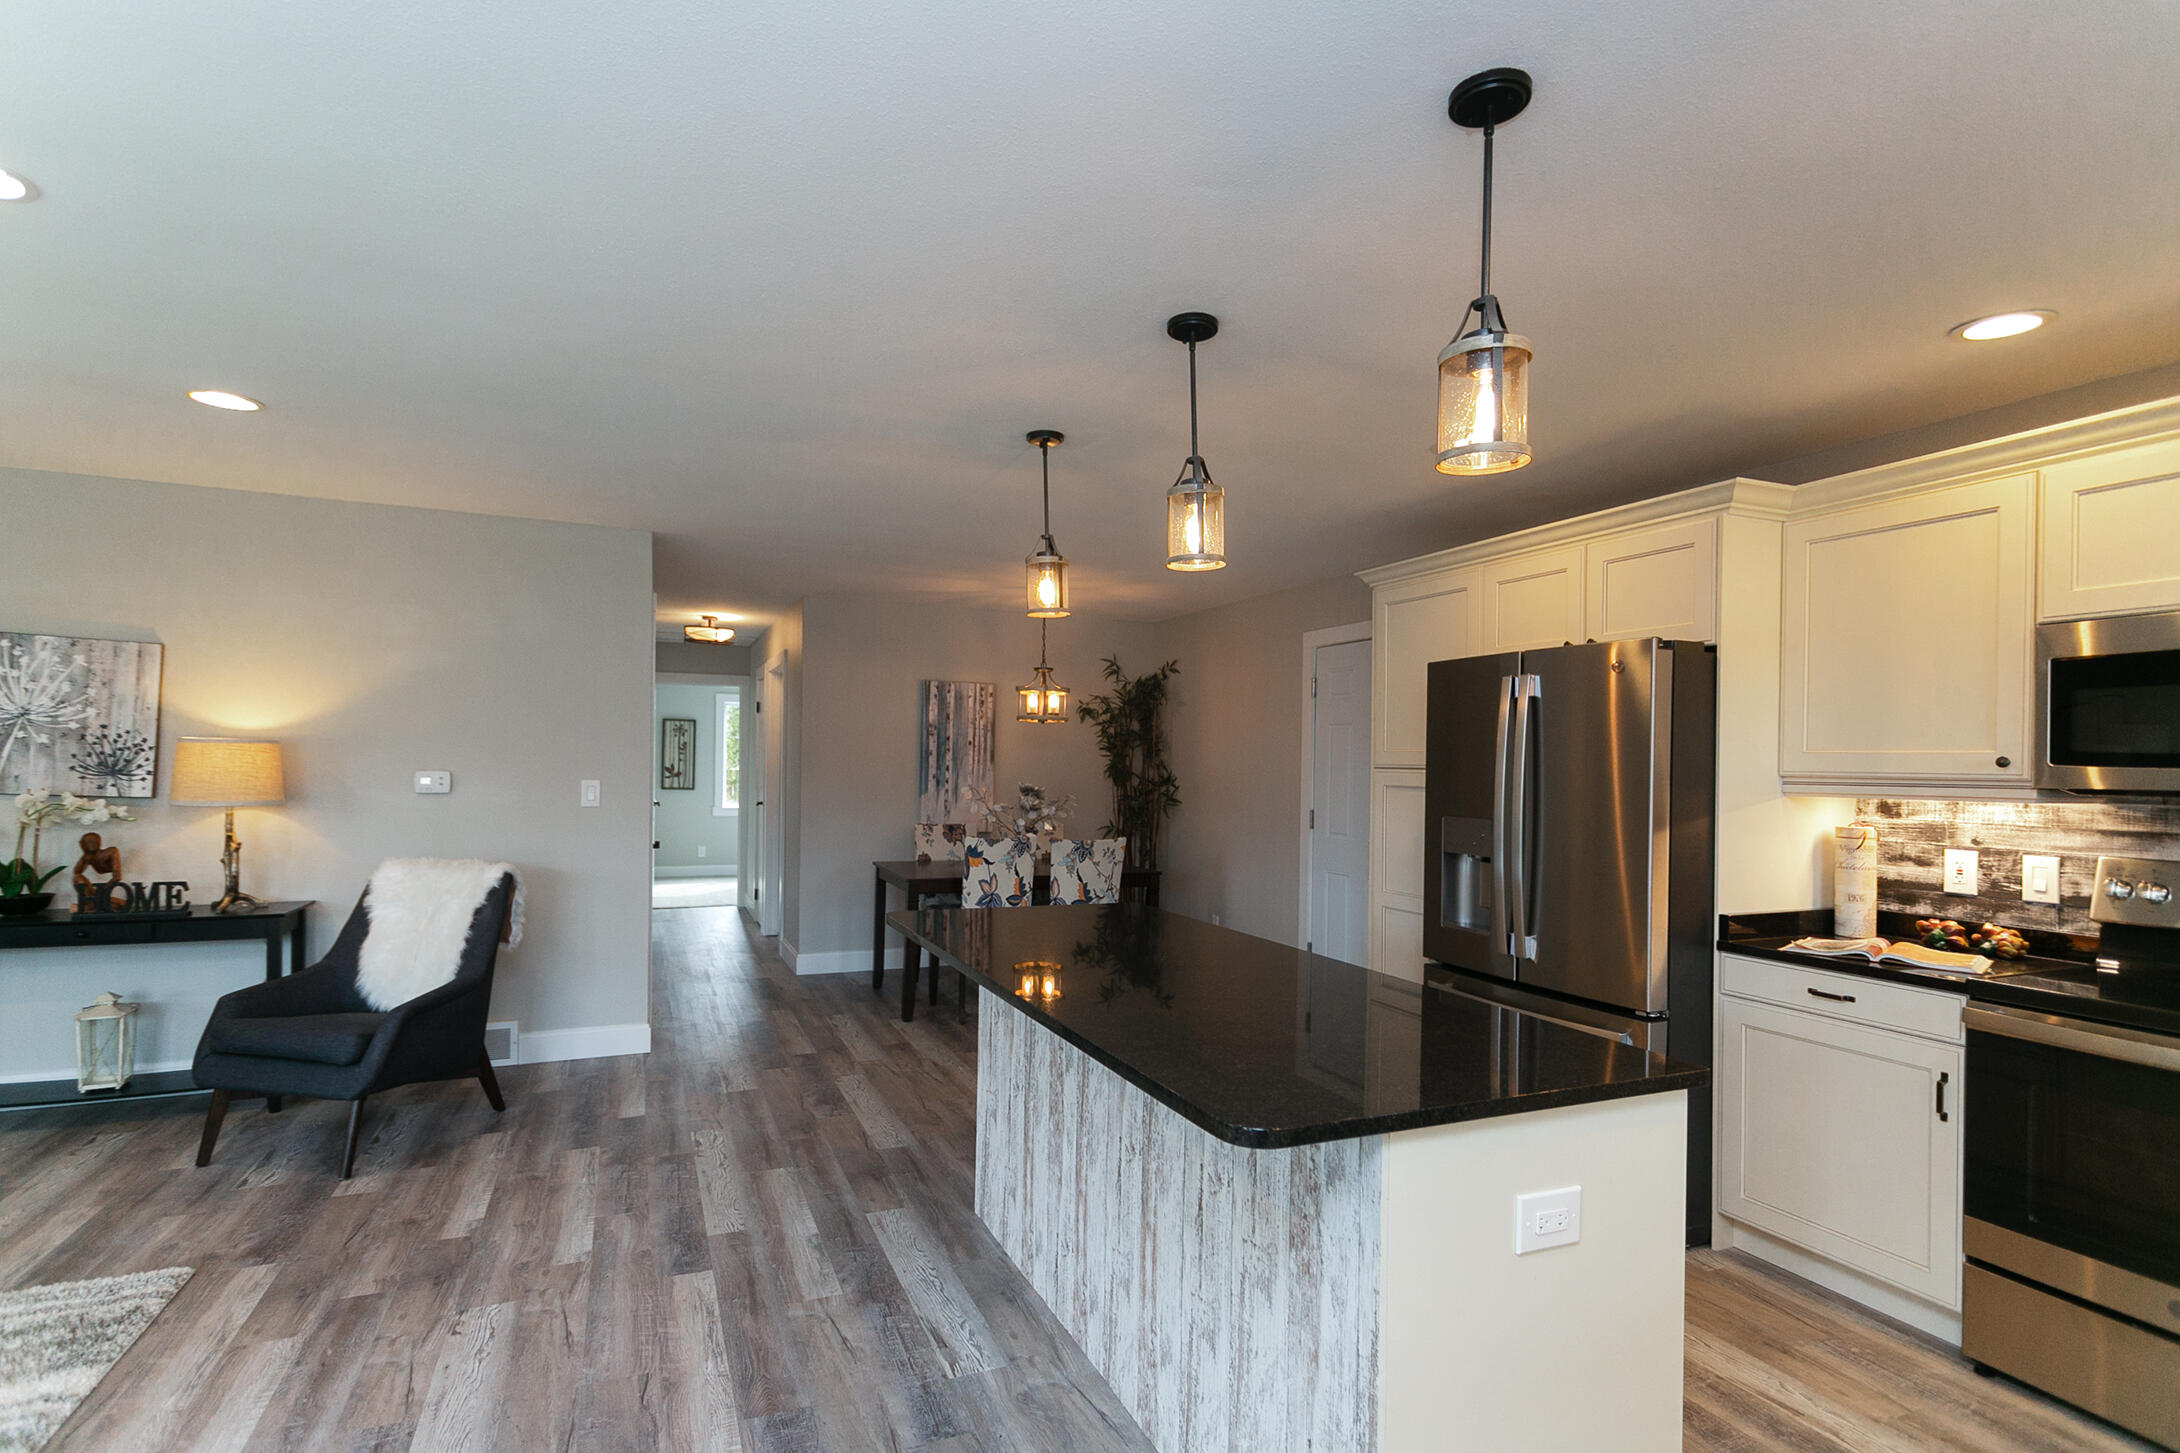 Open concept kitchen/living/dining area